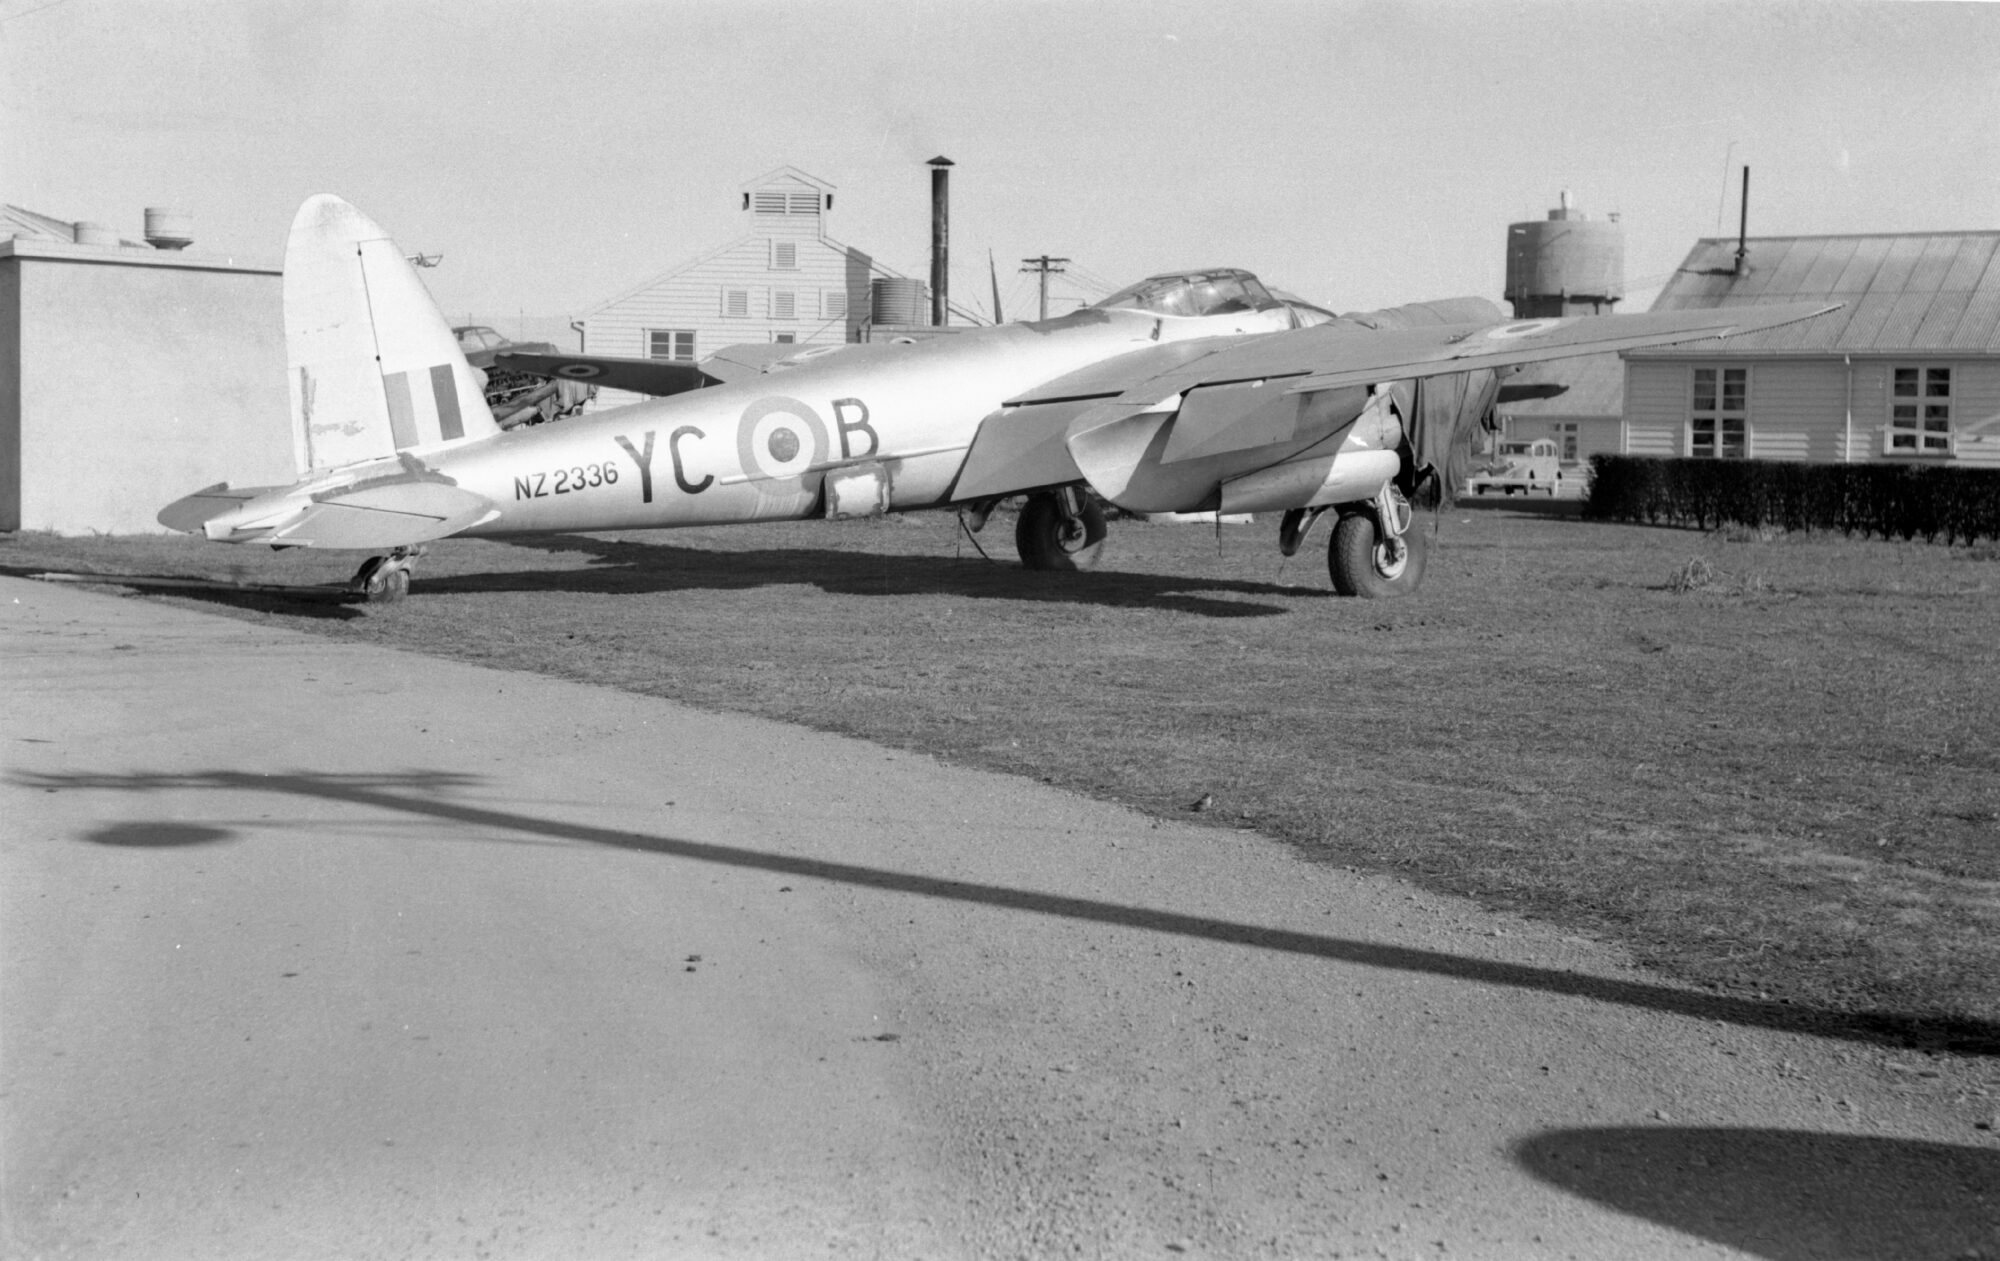 DH.98 Mosquito FB Mk. VI TE910-NZ2336 ( Photo © Des White personal collection via Air Force Museum of New Zealand )